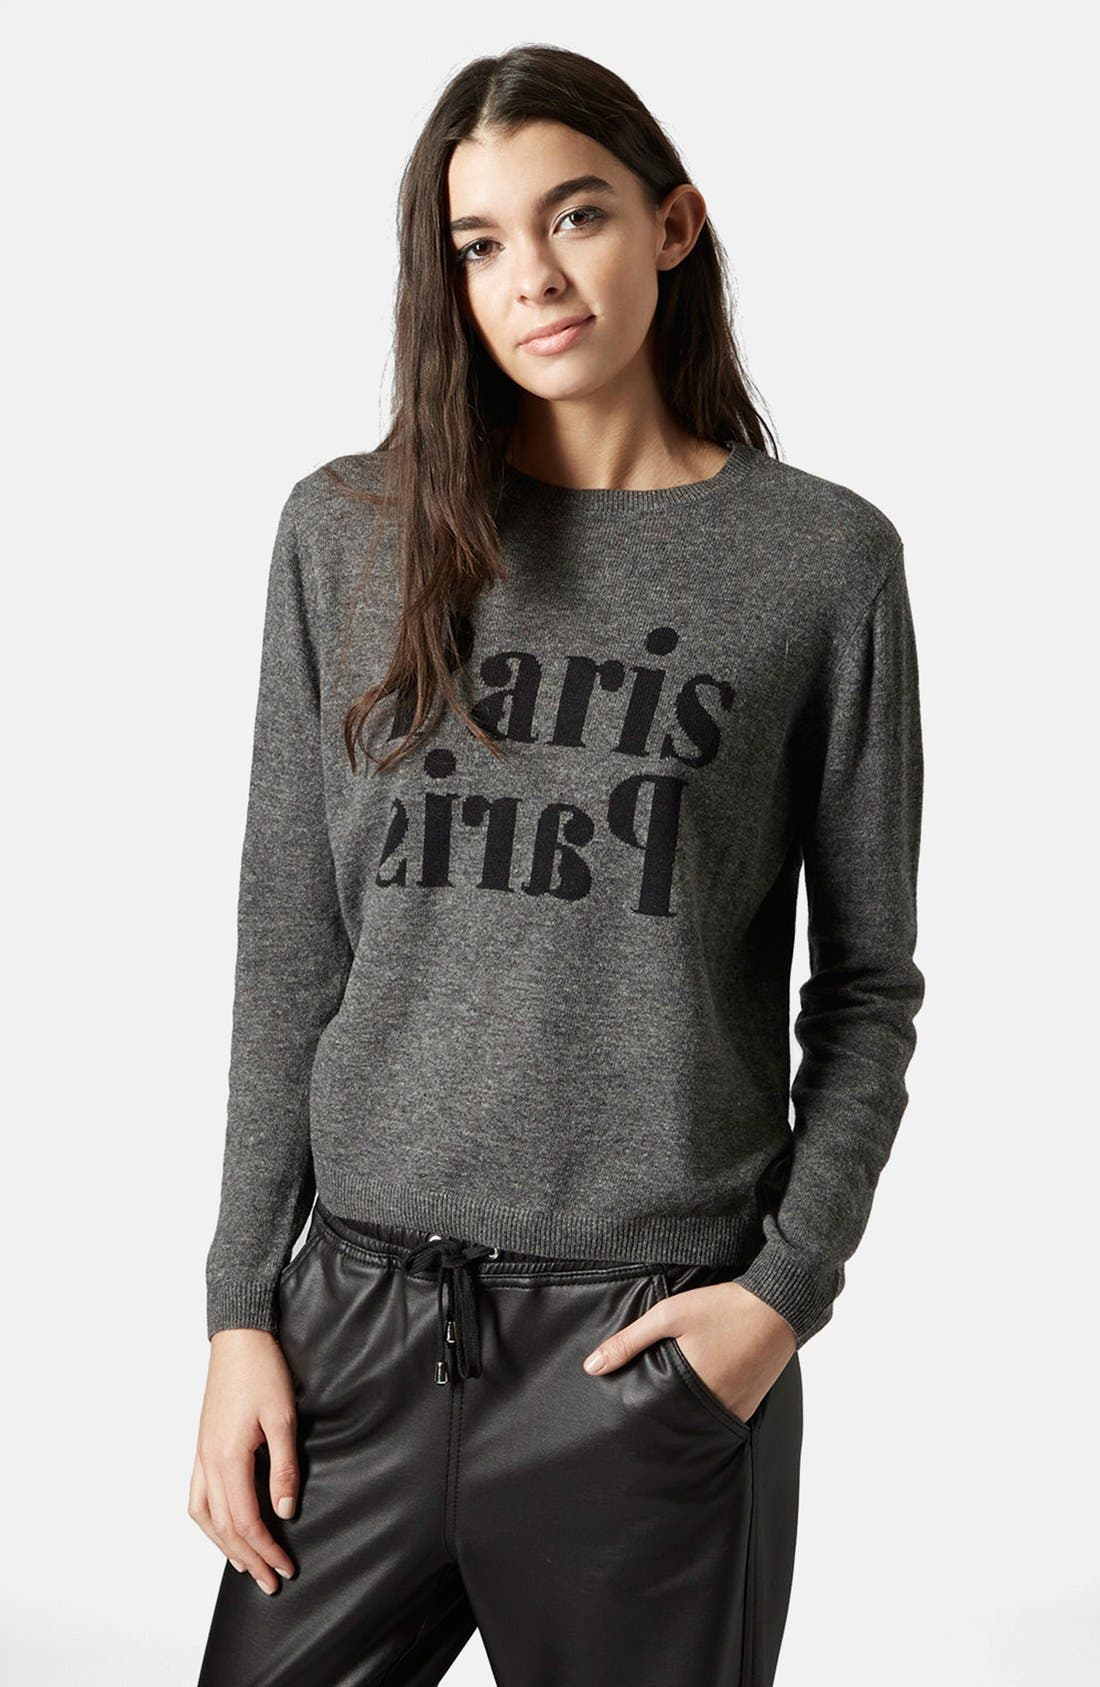 Main Image - Topshop 'Paris, Paris' Crewneck Sweater